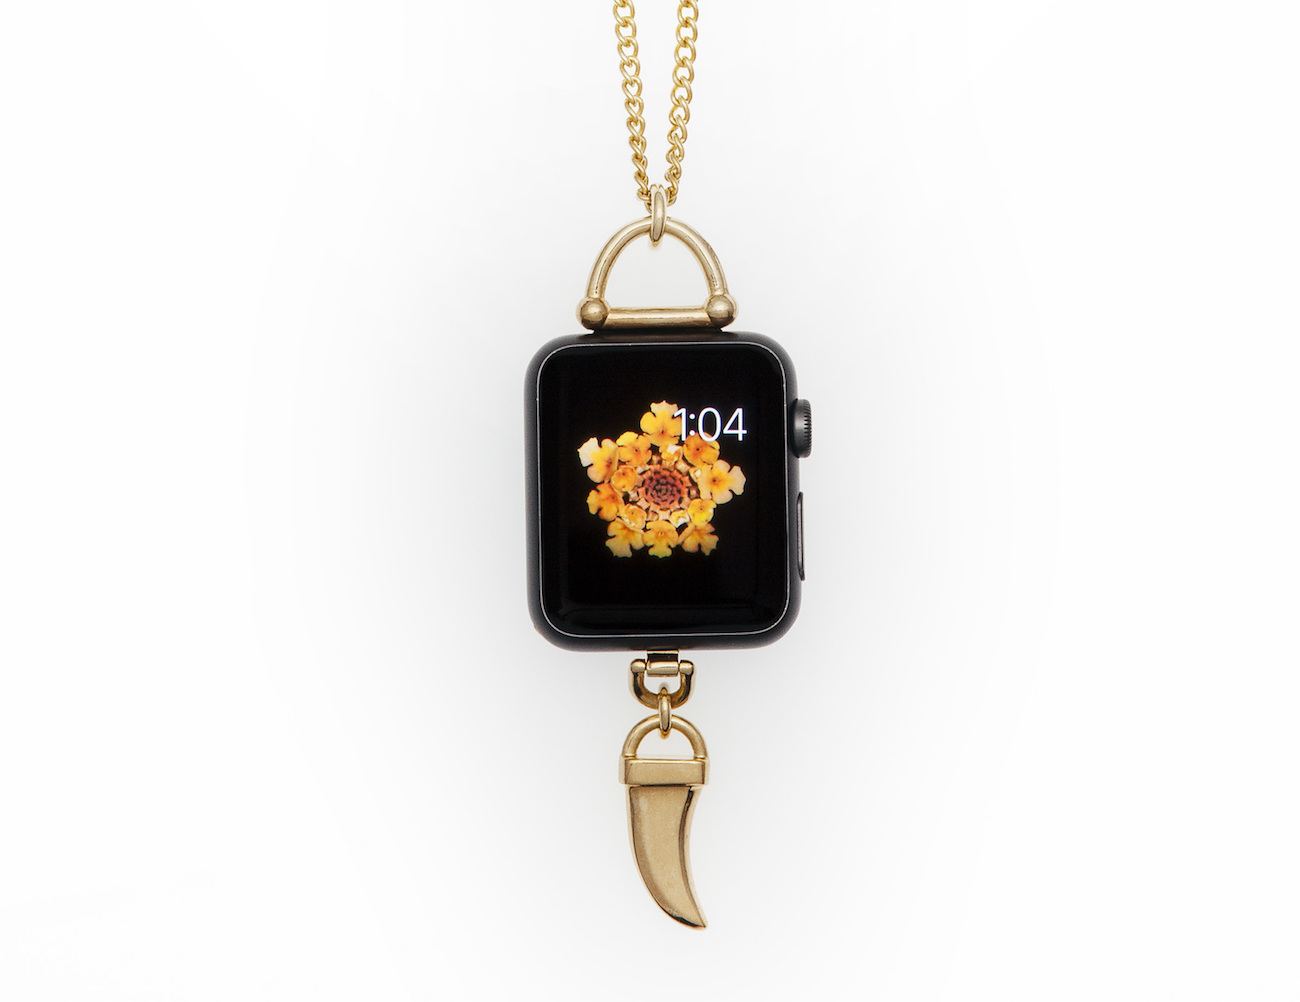 horn-charm-pendant-necklace-for-apple-watch-by-bucardo-04